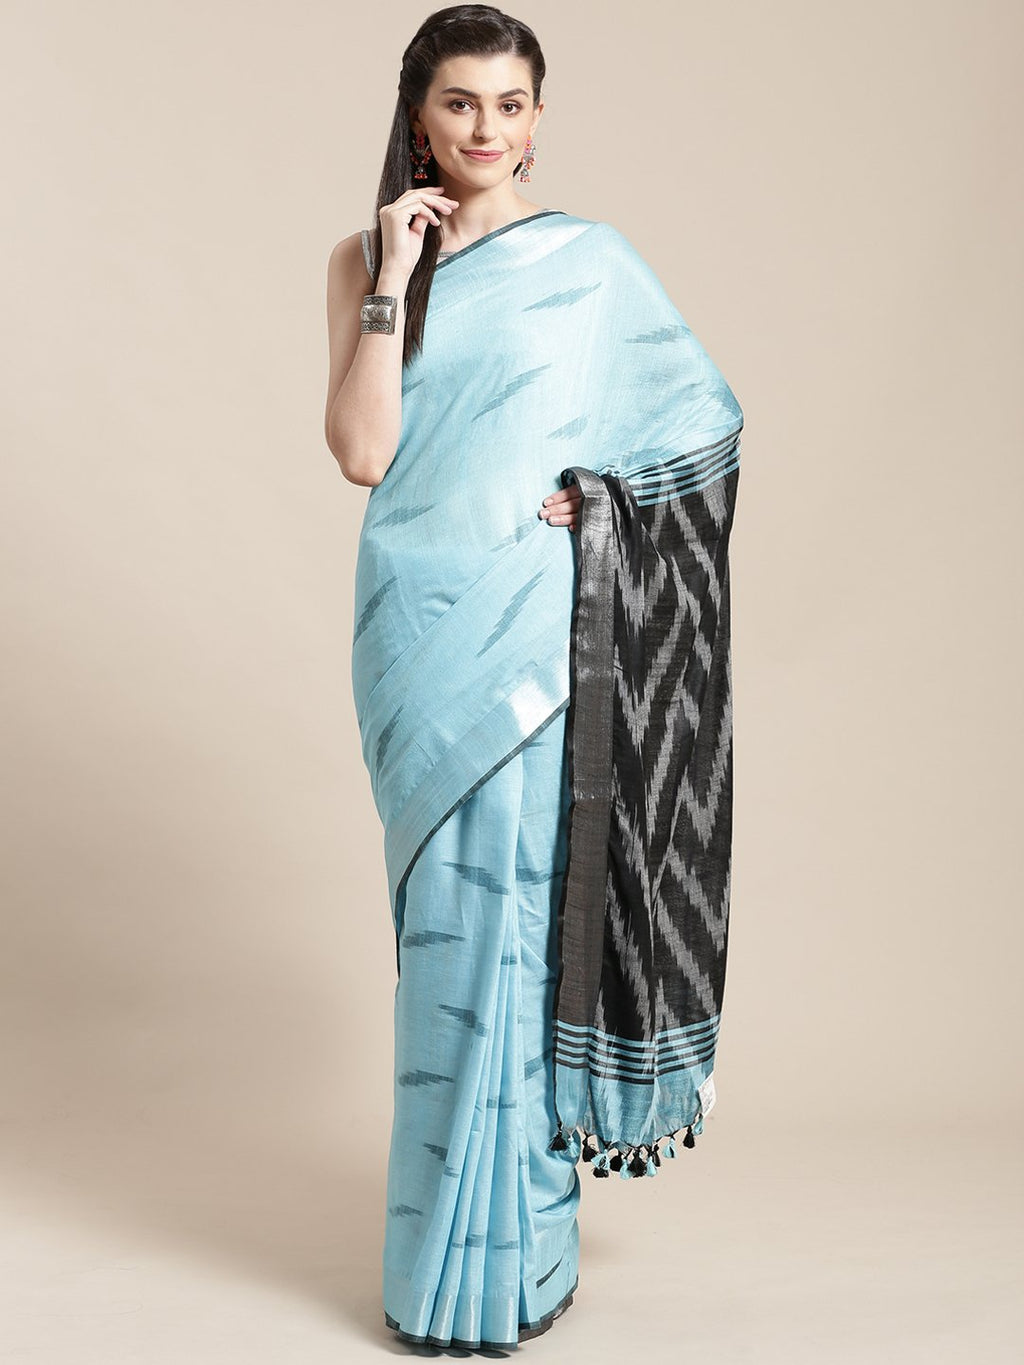 Linen Handwoven Saree and Blouse-Saree-Kalakari India-ALBGSA0032-Hand Woven, Linen, Sarees, Sustainable Fabrics, Traditional Weave-[Linen,Ethnic,wear,Fashionista,Handloom,Handicraft,Indigo,blockprint,block,print,Cotton,Chanderi,Blue, latest,classy,party,bollywood,trendy,summer,style,traditional,formal,elegant,unique,style,hand,block,print, dabu,booti,gift,present,glamorous,affordable,collectible,Sari,Saree,printed, holi, Diwali, birthday, anniversary, sustainable, organic, scarf, online, low pri